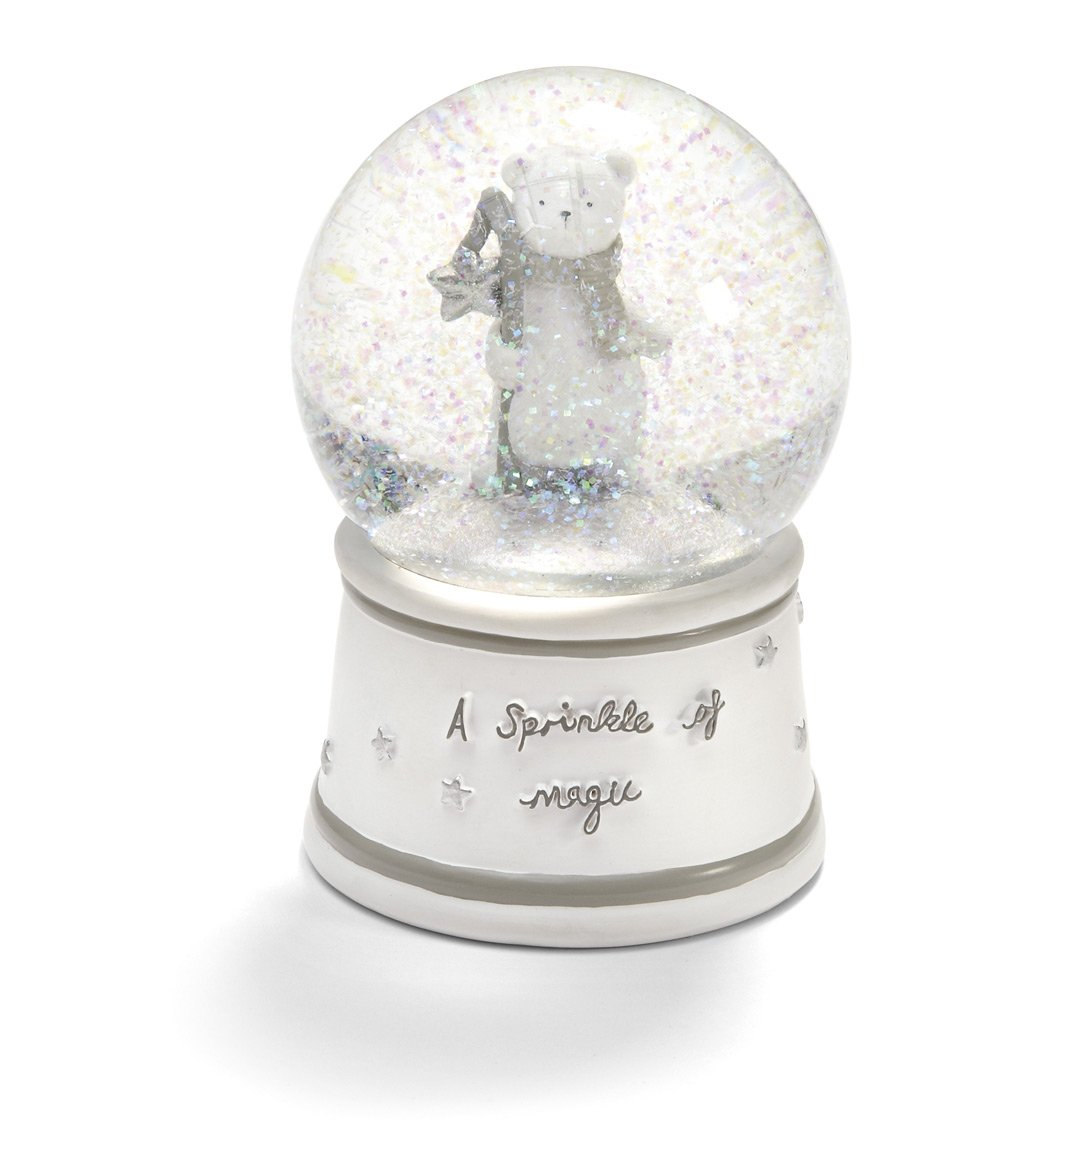 Mamas & Papas Polar Bear Christmas Snow Globe (White) 454802700